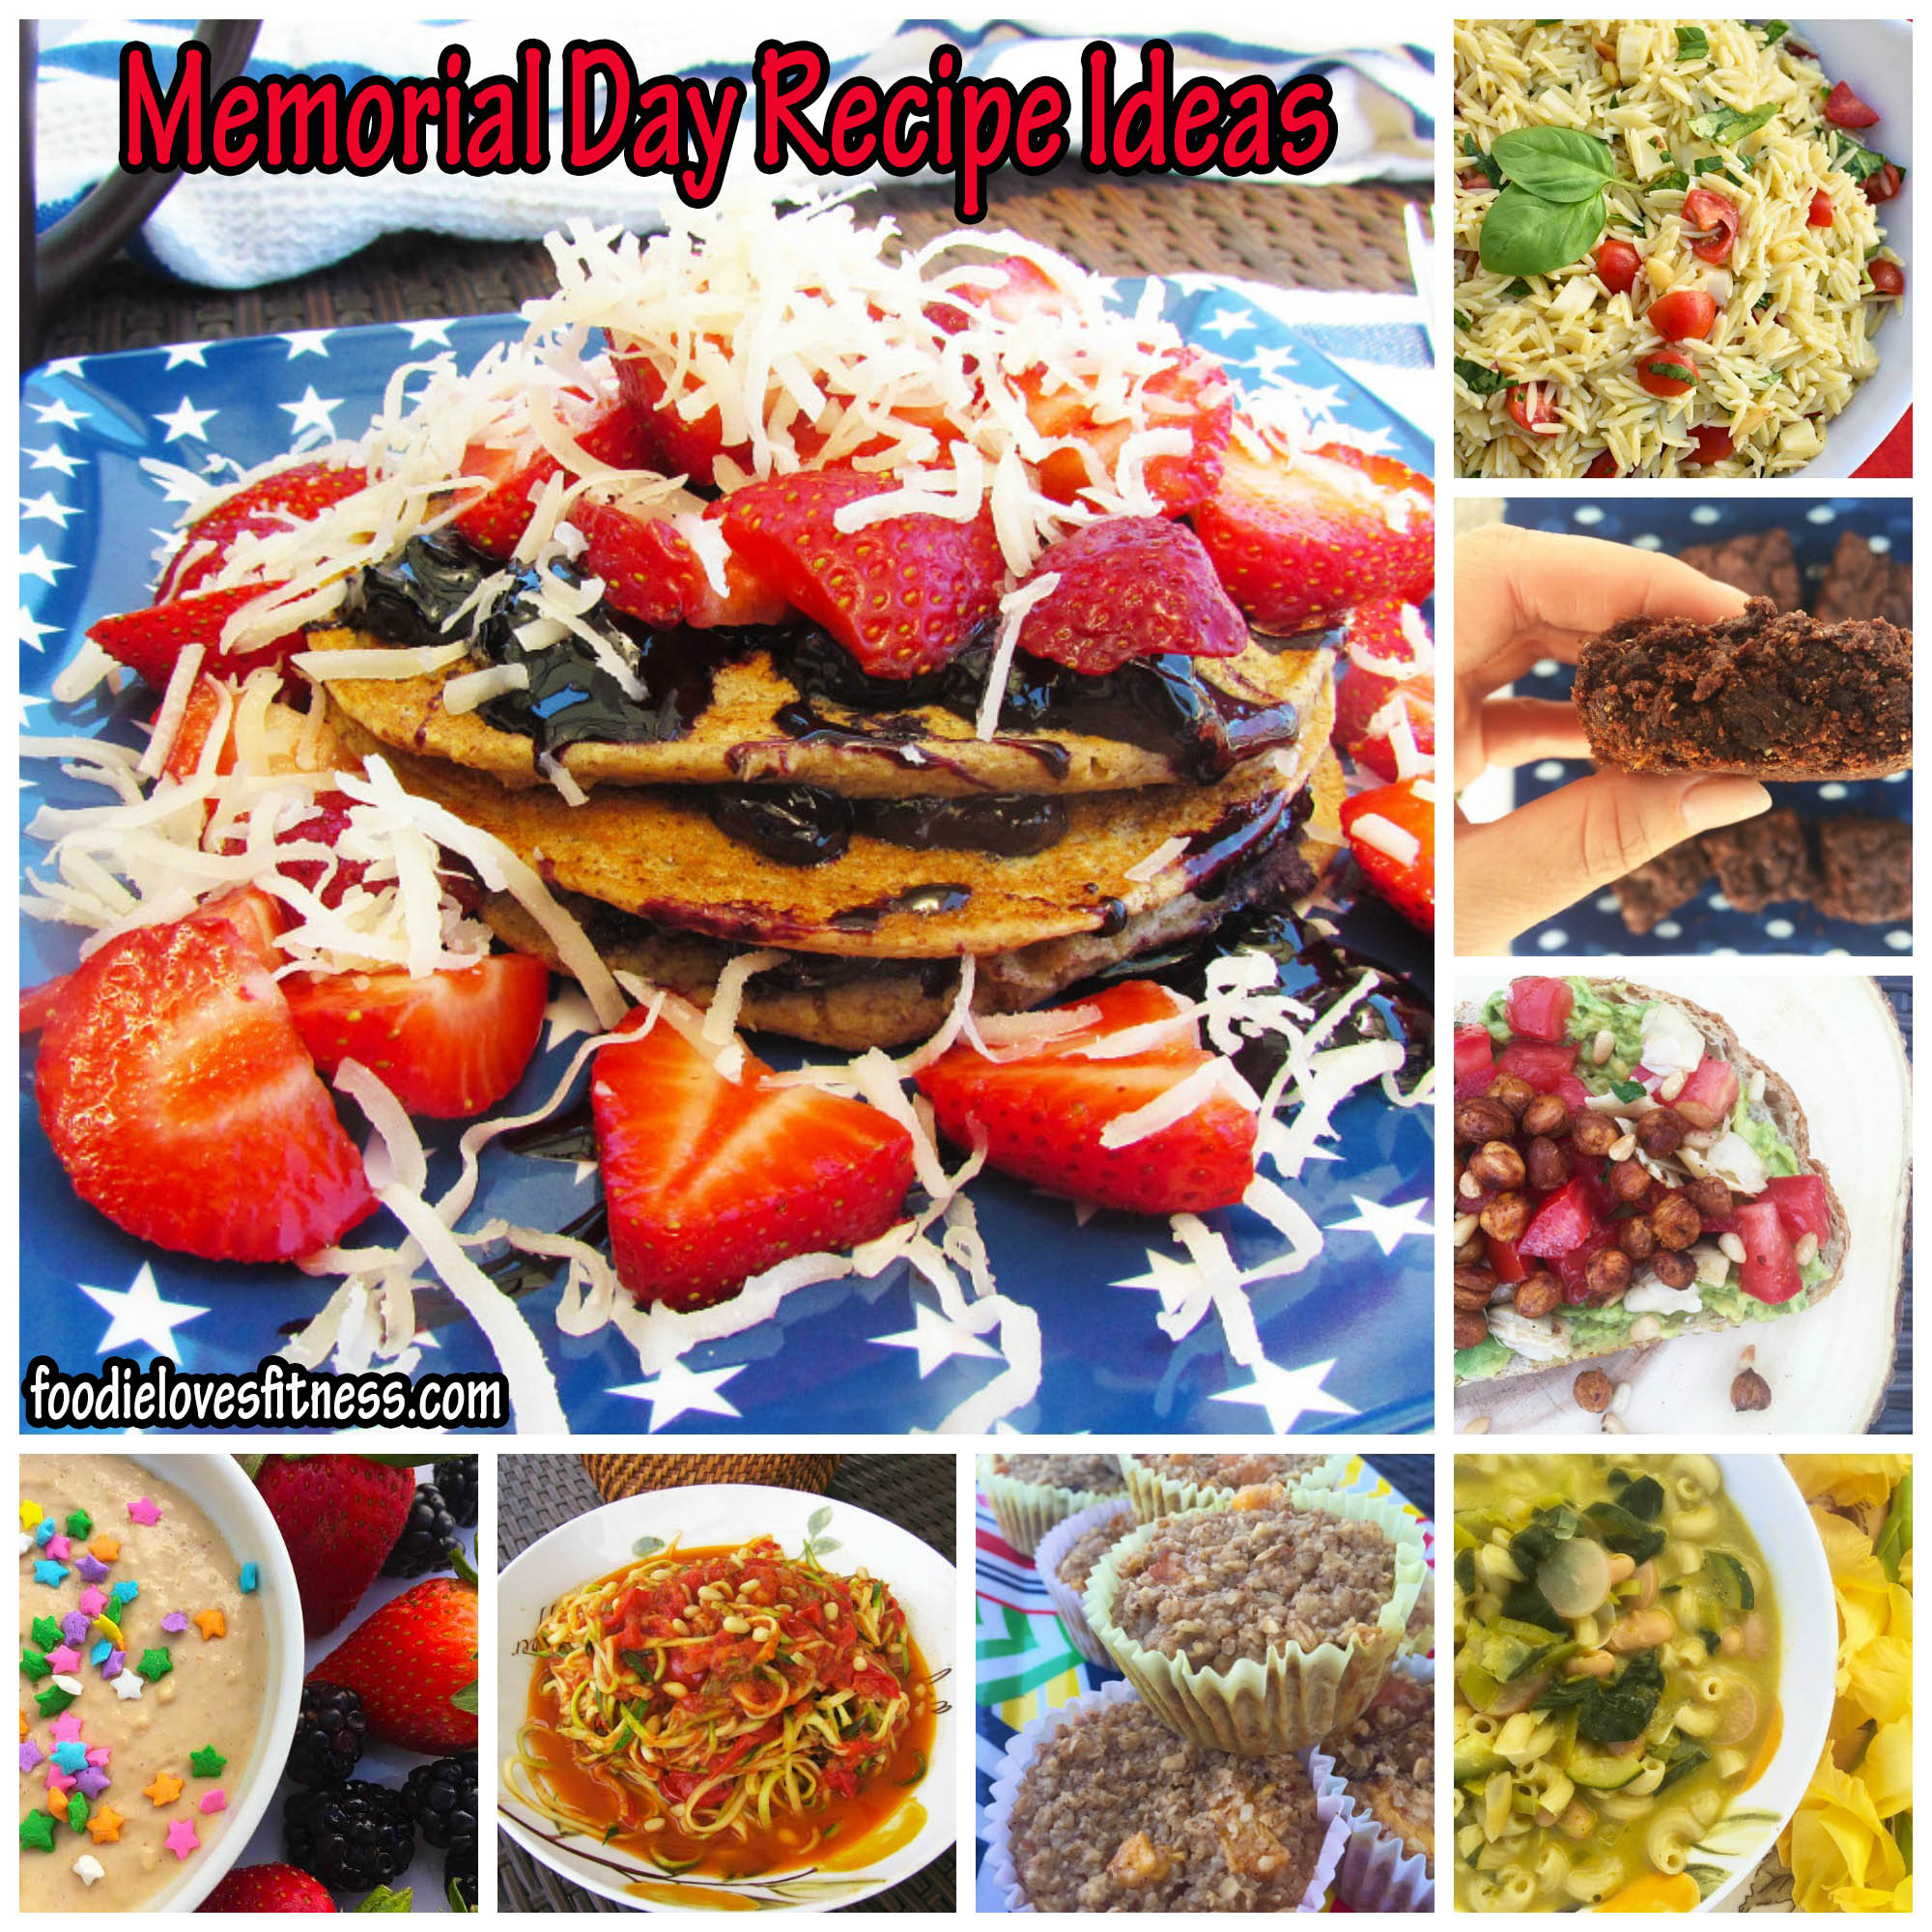 10 Recipes To Try This Memorial Day Weekend • Foodie Loves